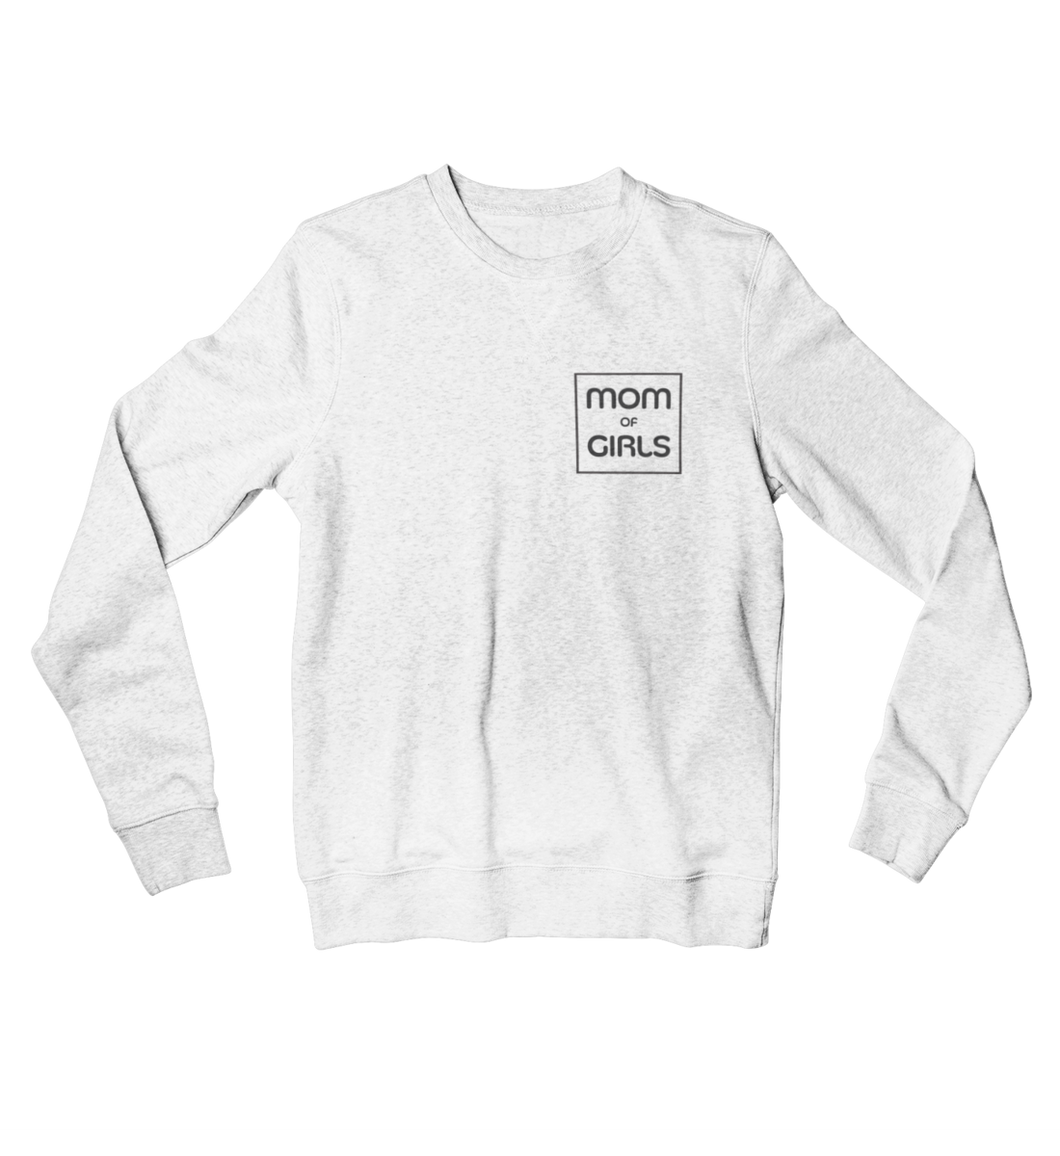 MOM OF GIRLS - Organisches Sweatshirt Damen